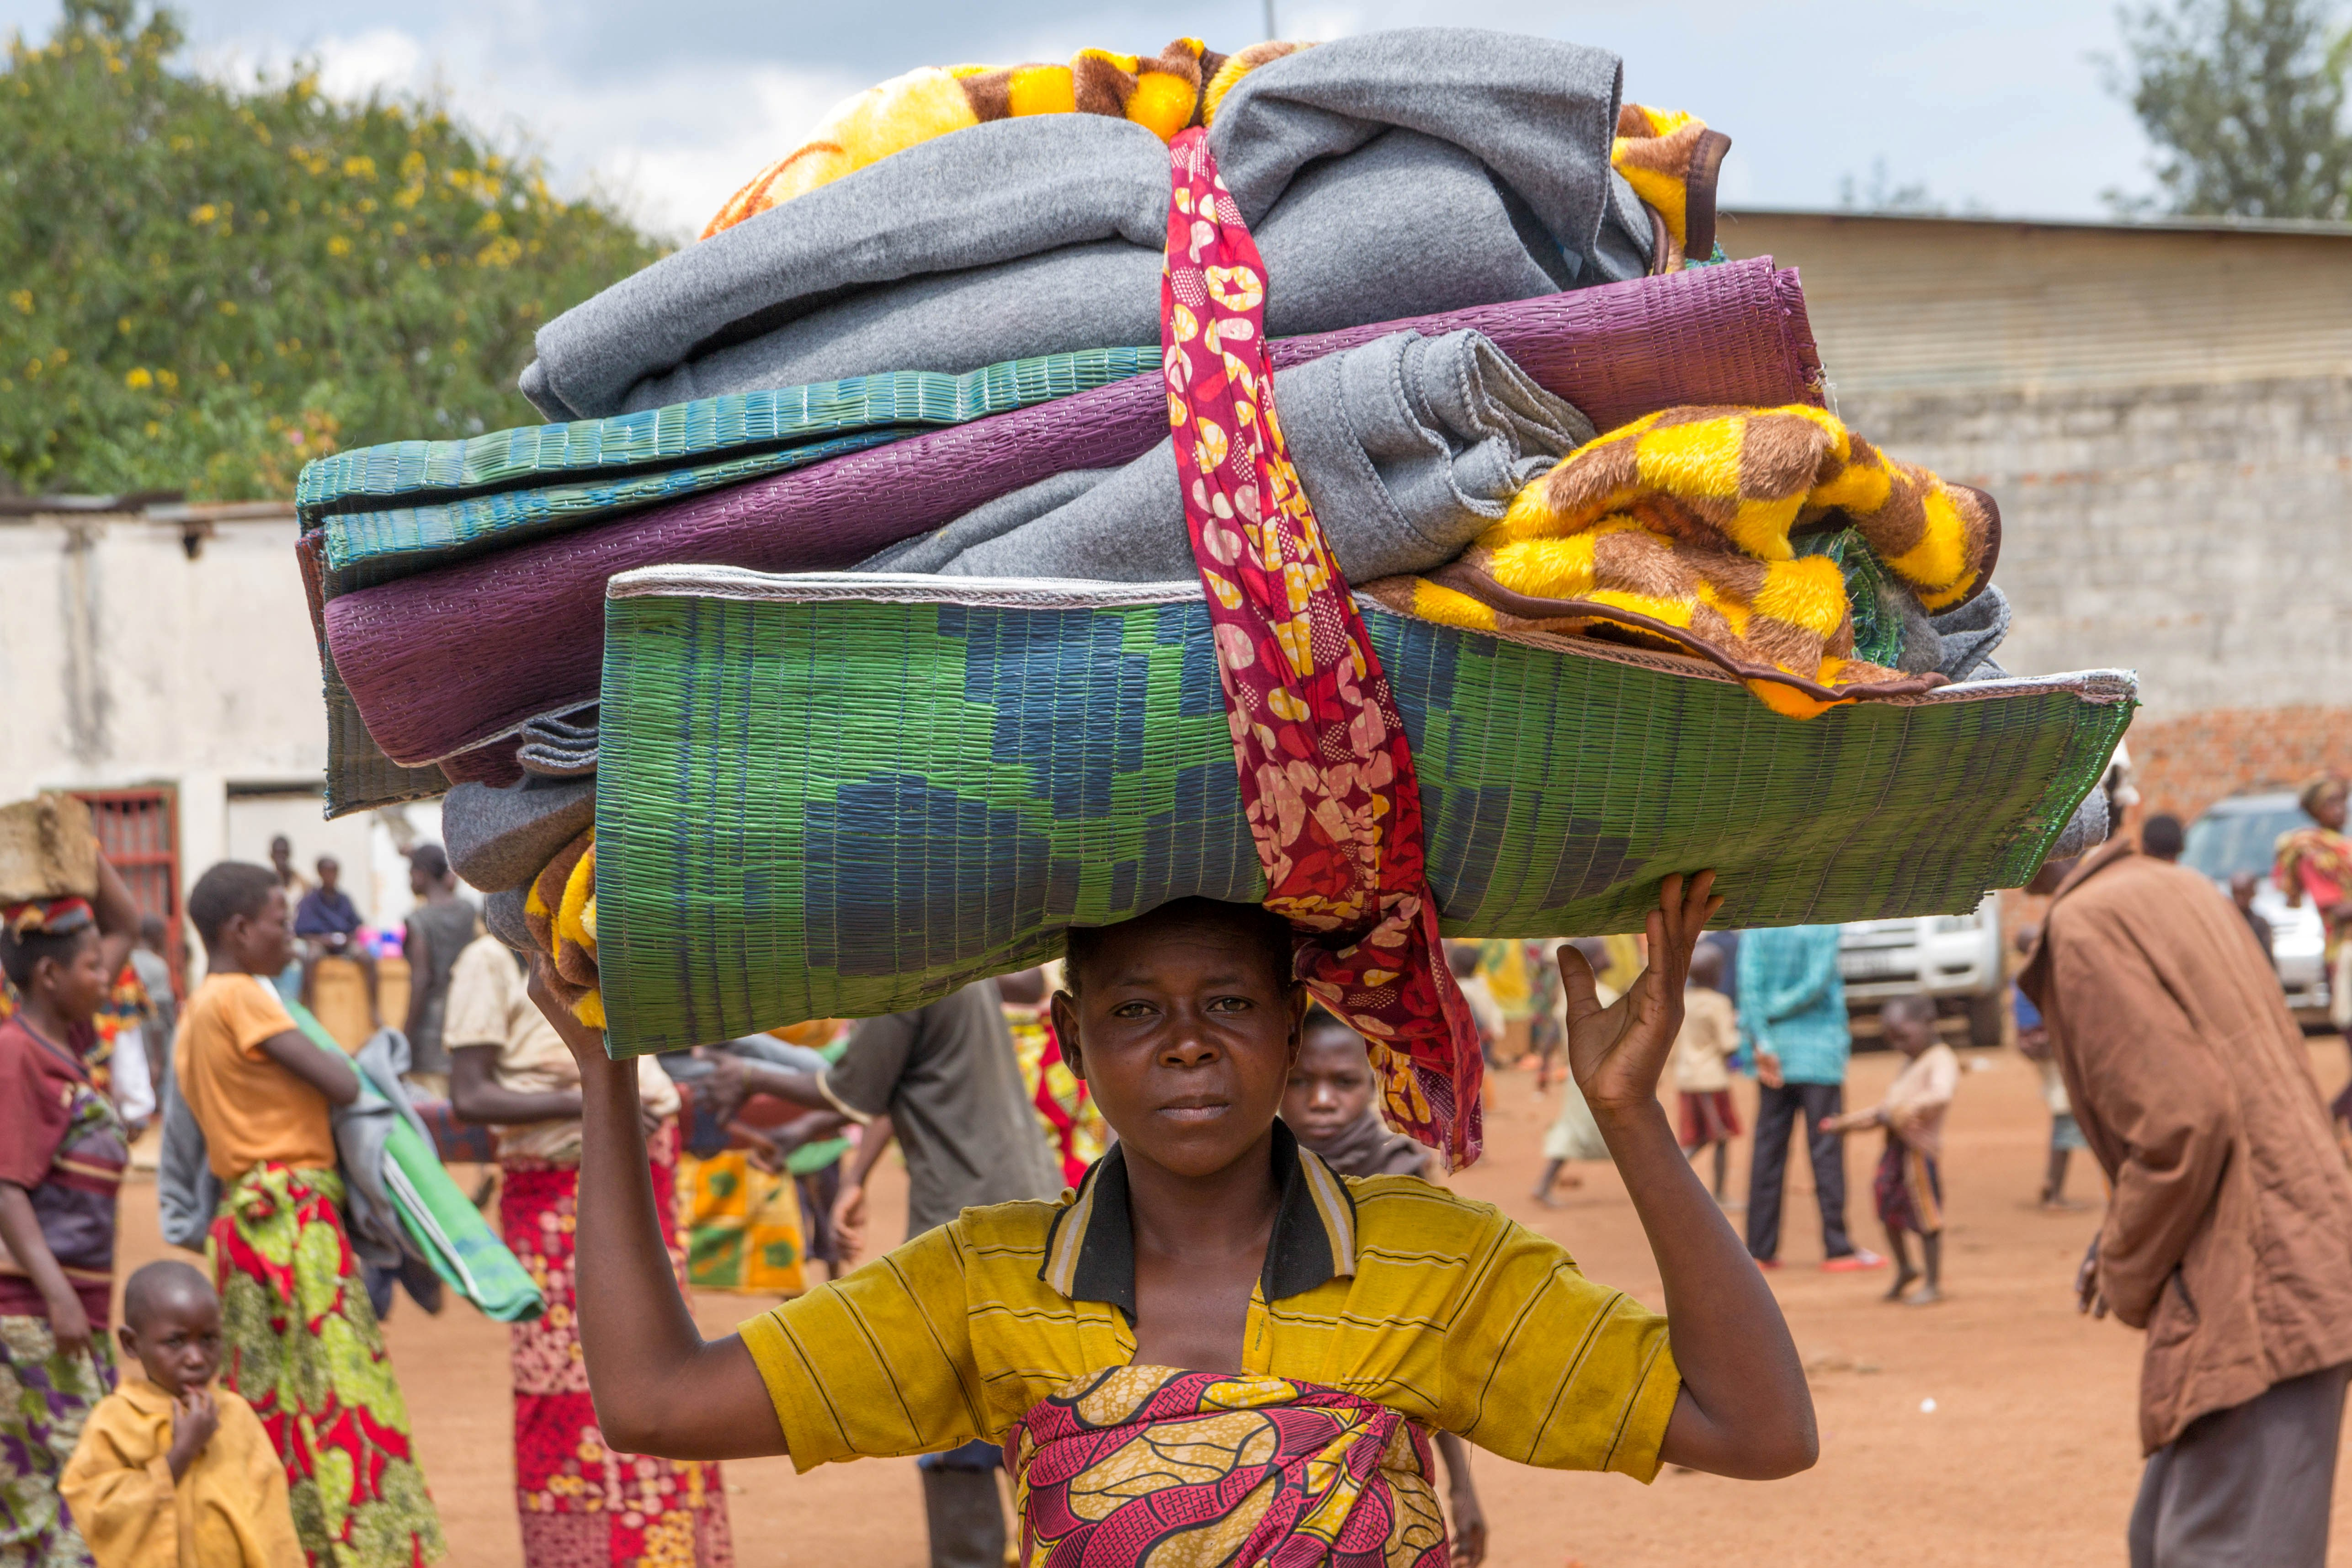 A Burundian mother flees into Rwanda to escape violence back home